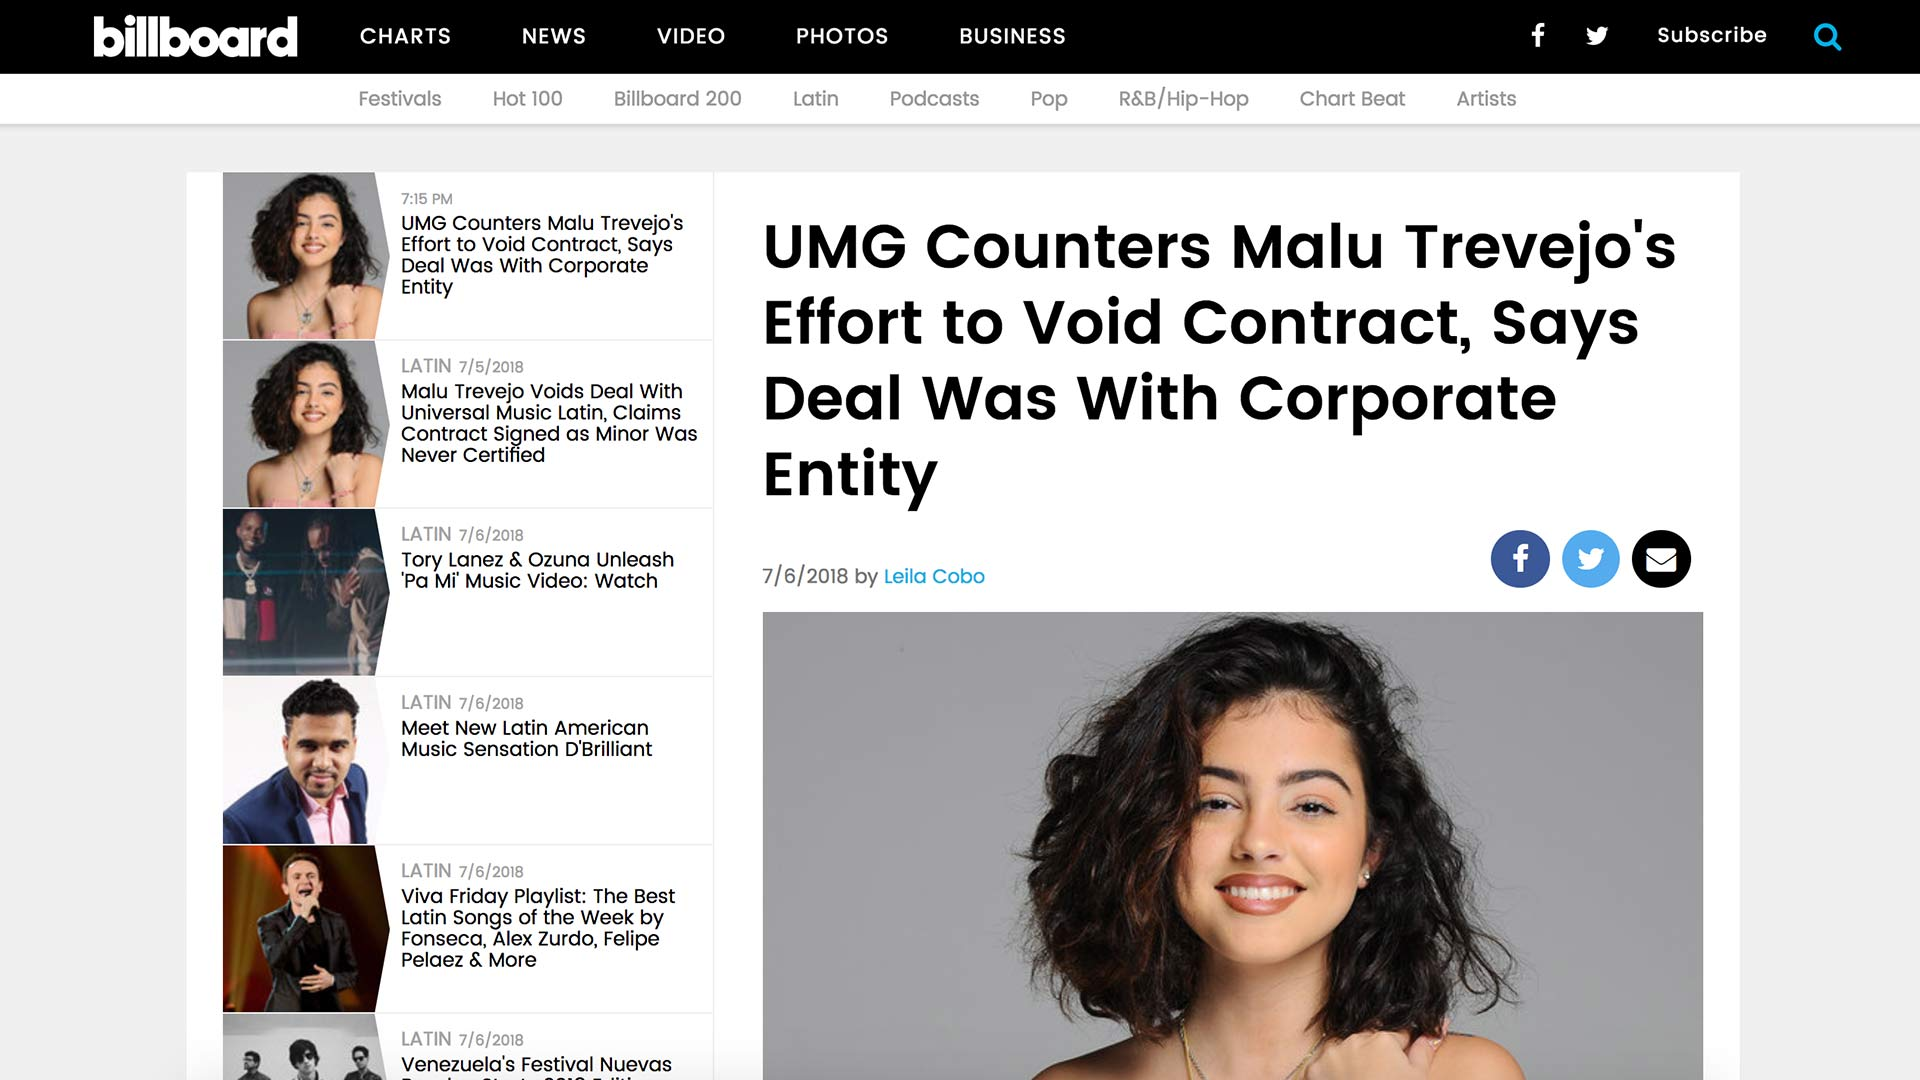 Fairness Rocks News UMG Counters Malu Trevejo's Effort to Void Contract, Says Deal Was With Corporate Entity